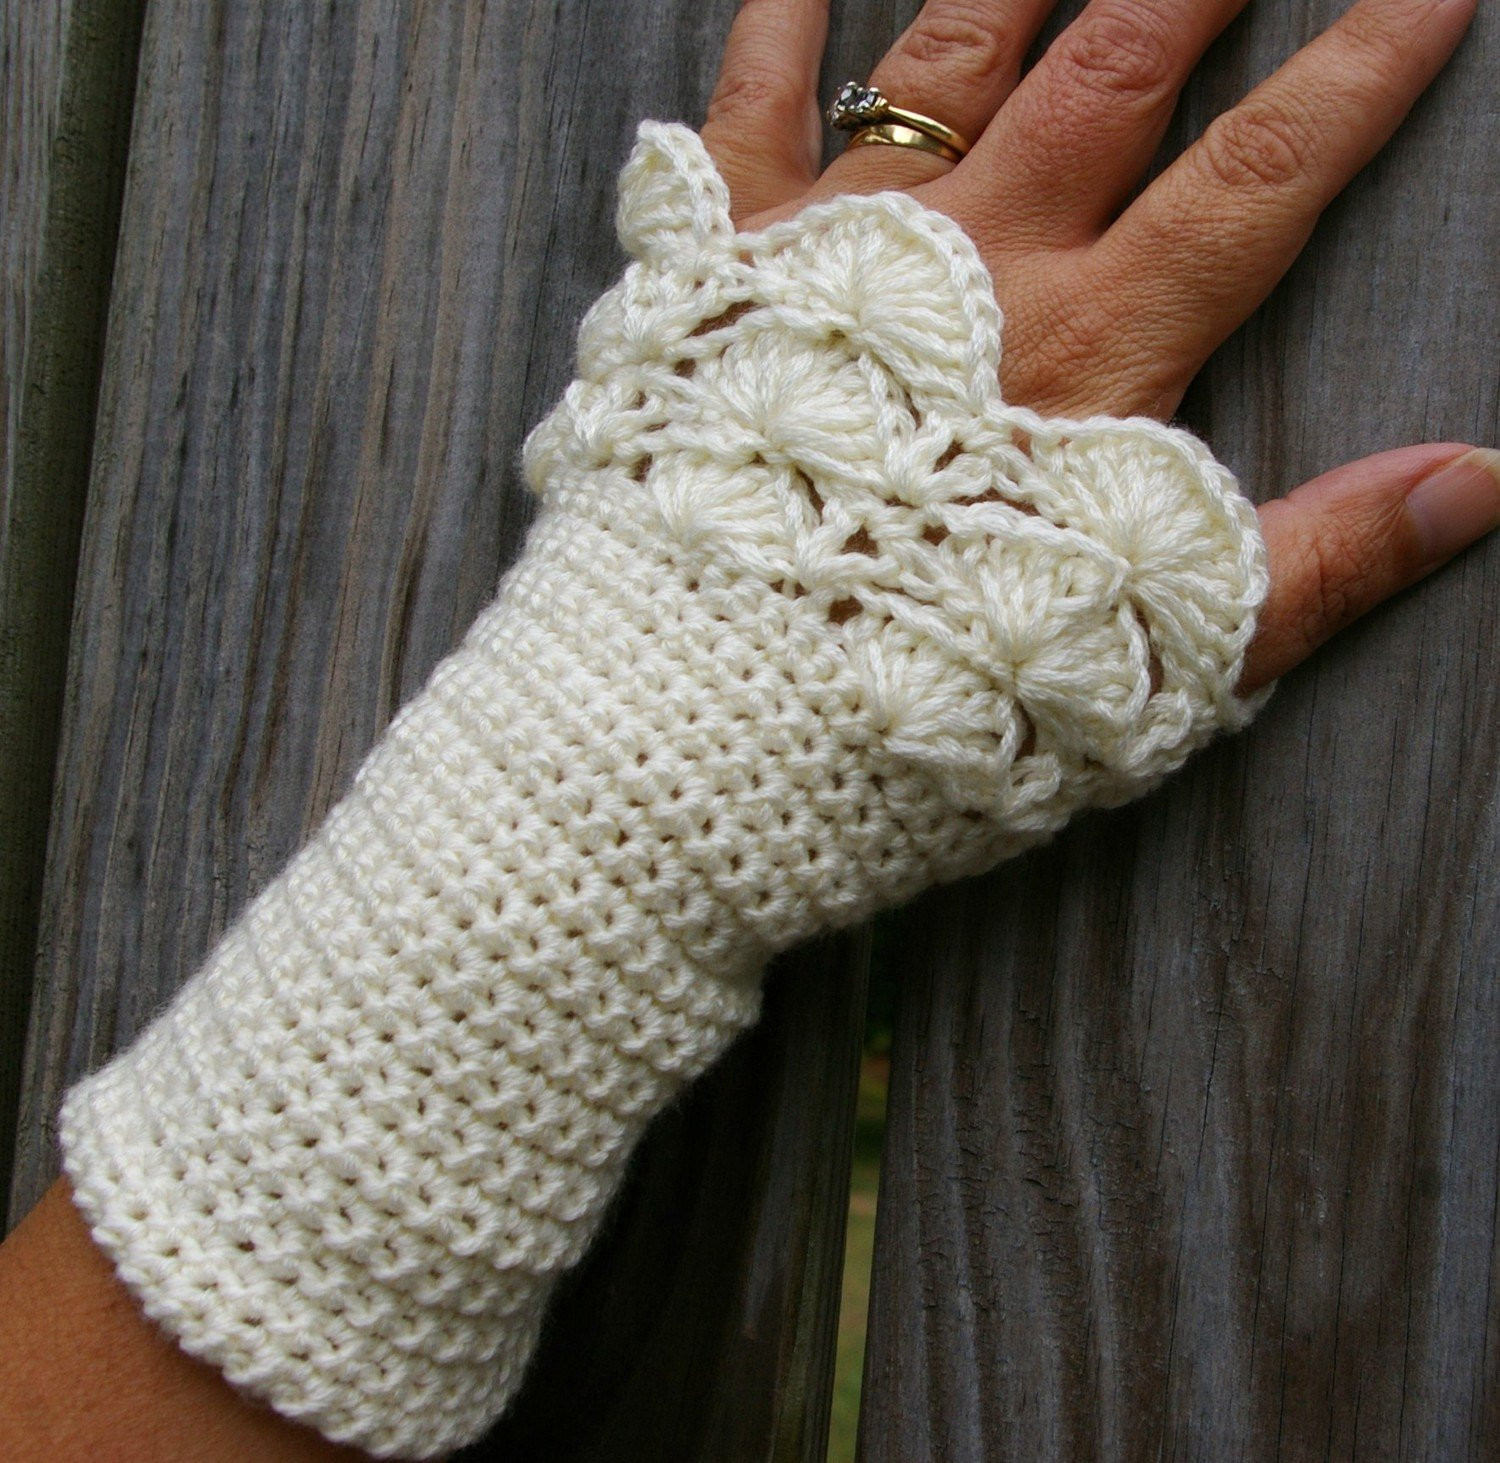 Inspirational Arm Warmers Fingerless Gloves In Cream Peacock Ruffle Crochet Crochet Arm Warmers Of Gorgeous 44 Images Crochet Arm Warmers